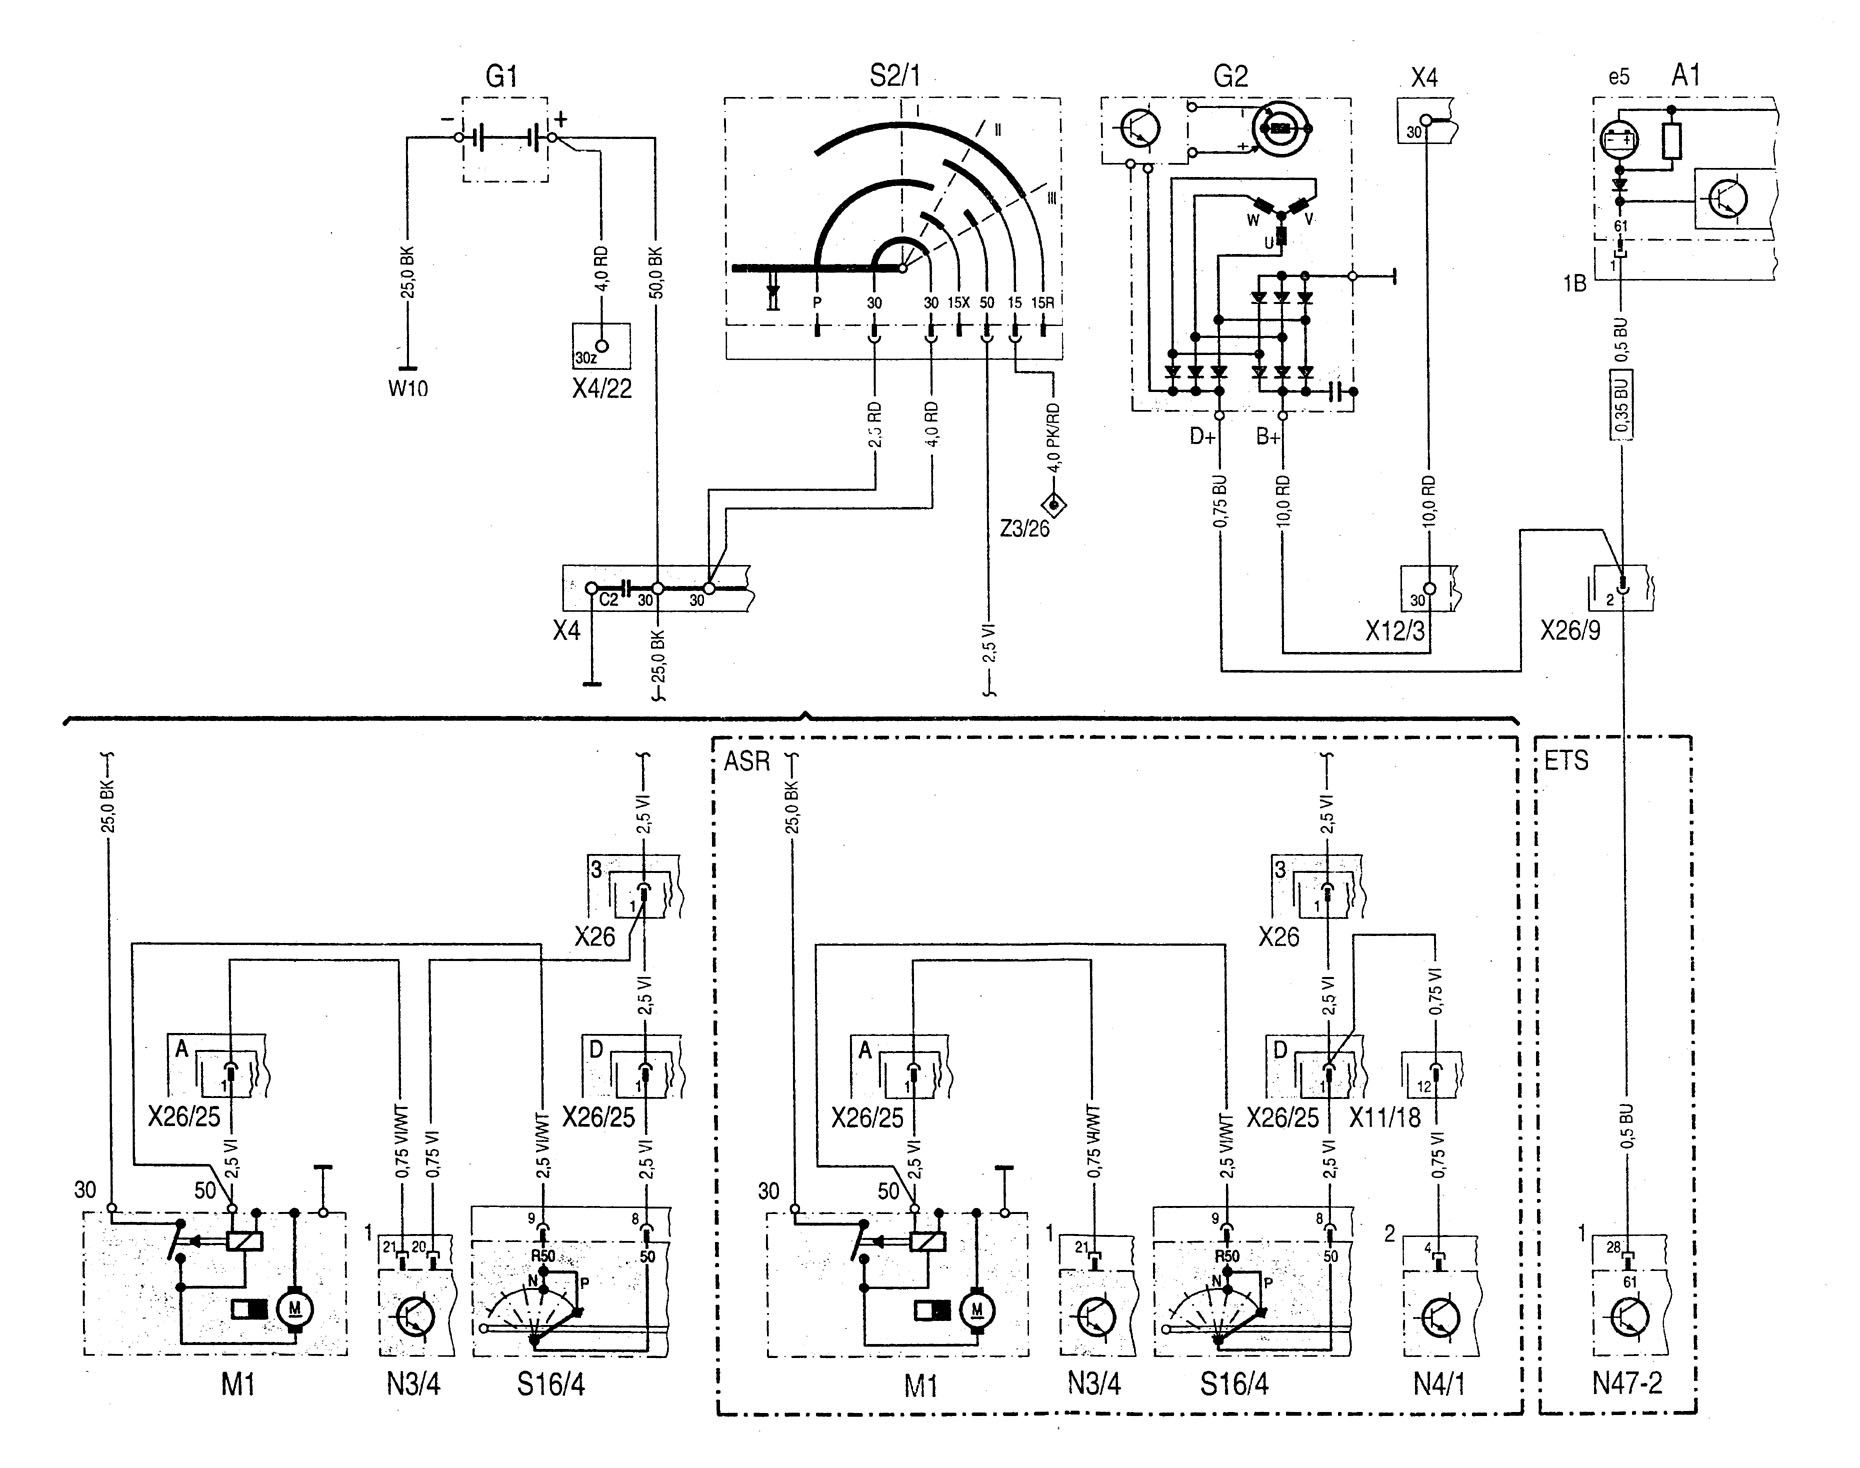 Mercede Fuse Box Diagram C230